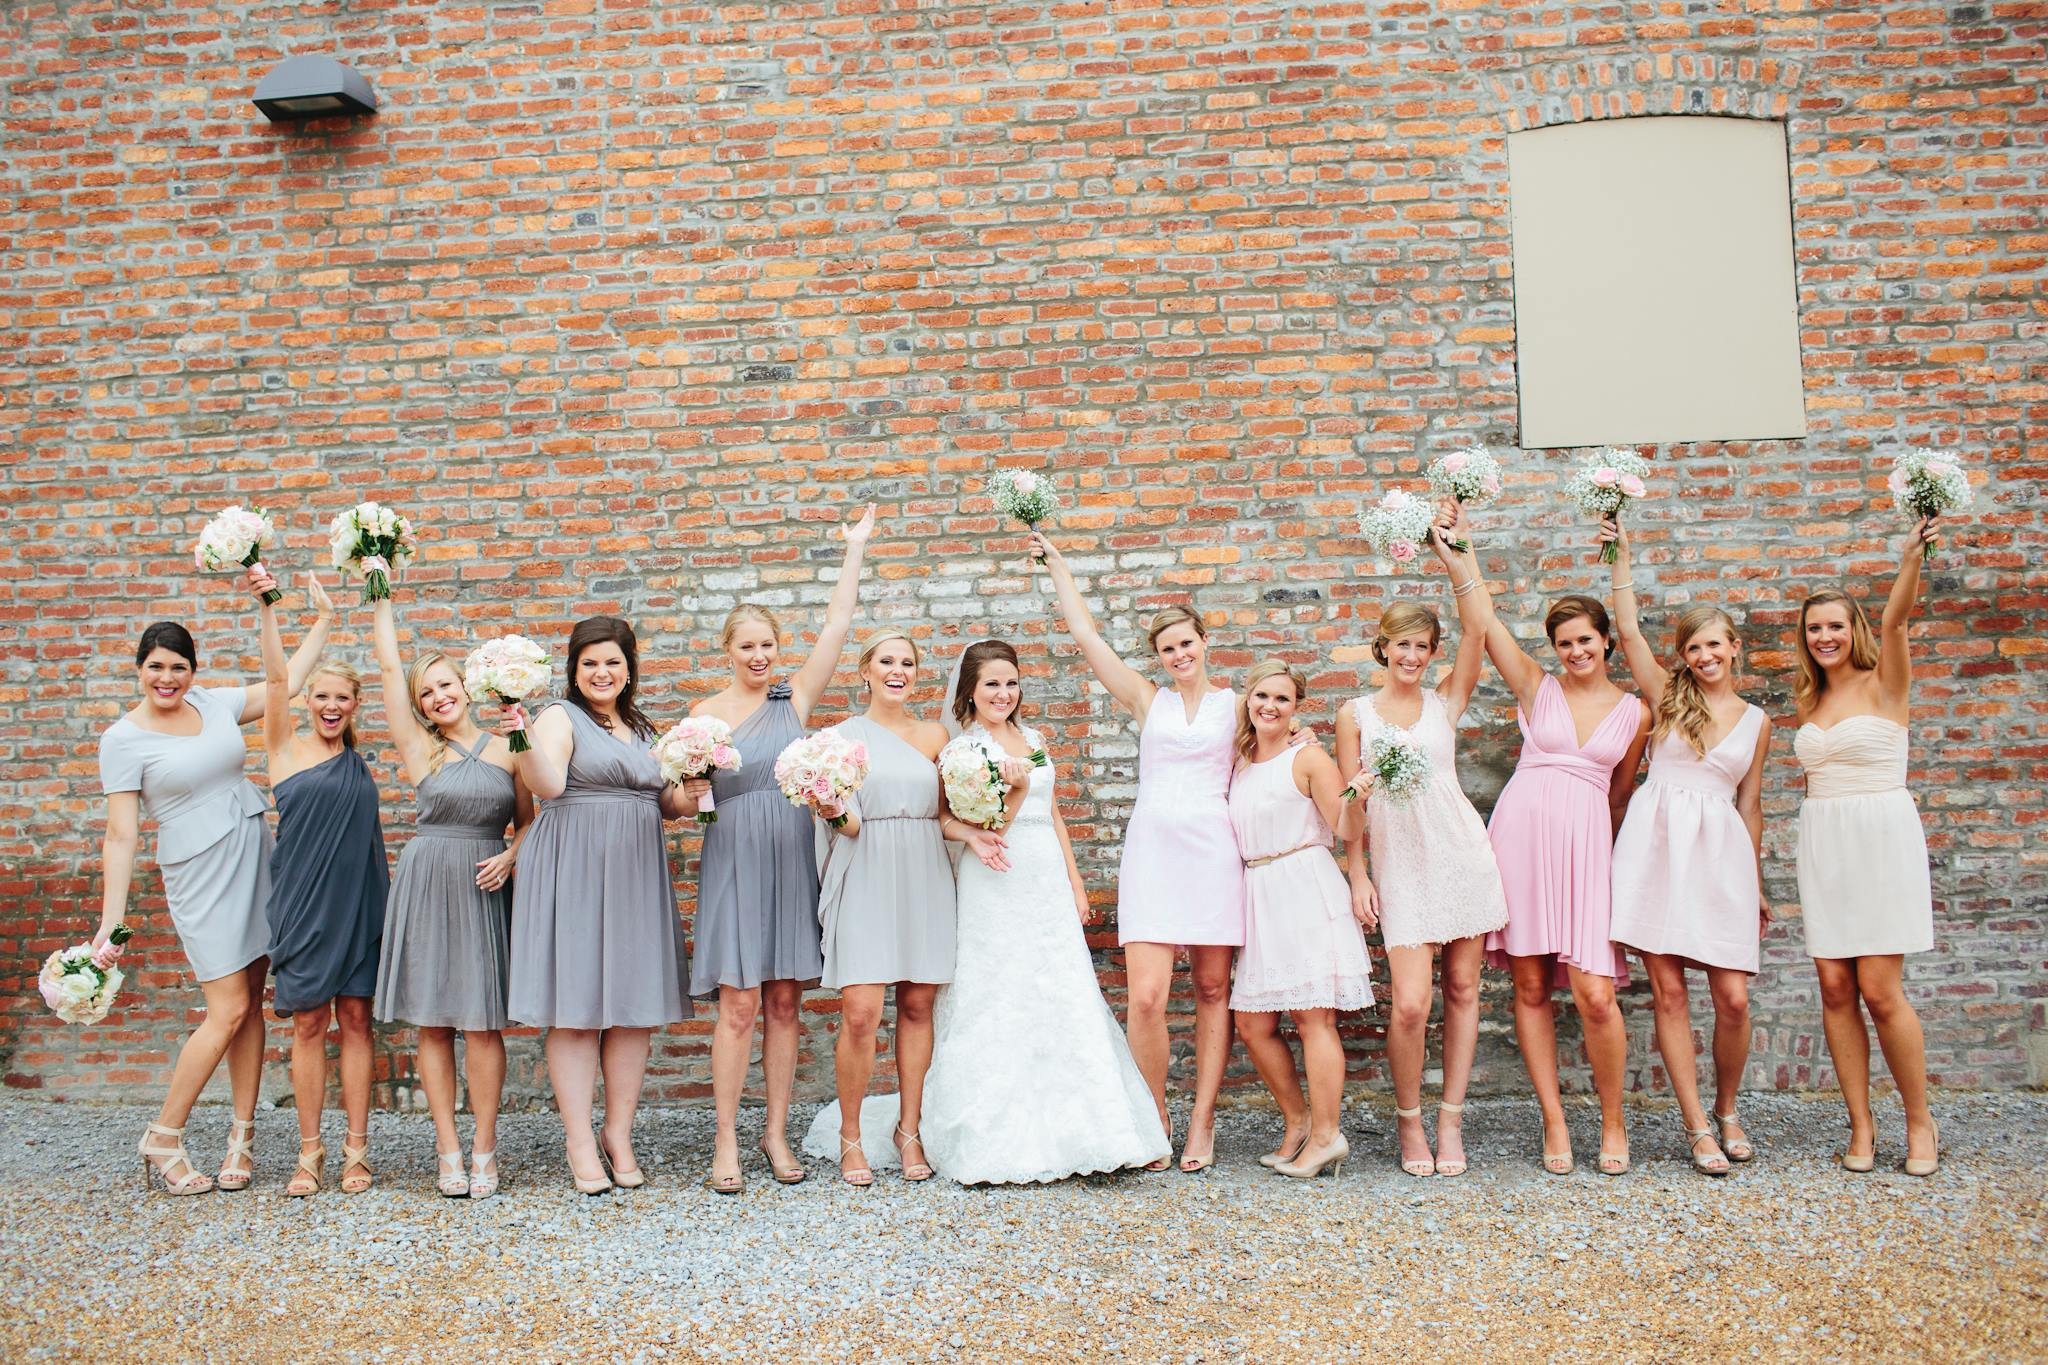 Flowers_Bridal_Party_Molly_Kirk_Simply_Yours_Weddings_Houston_Station_Nashville.jpeg